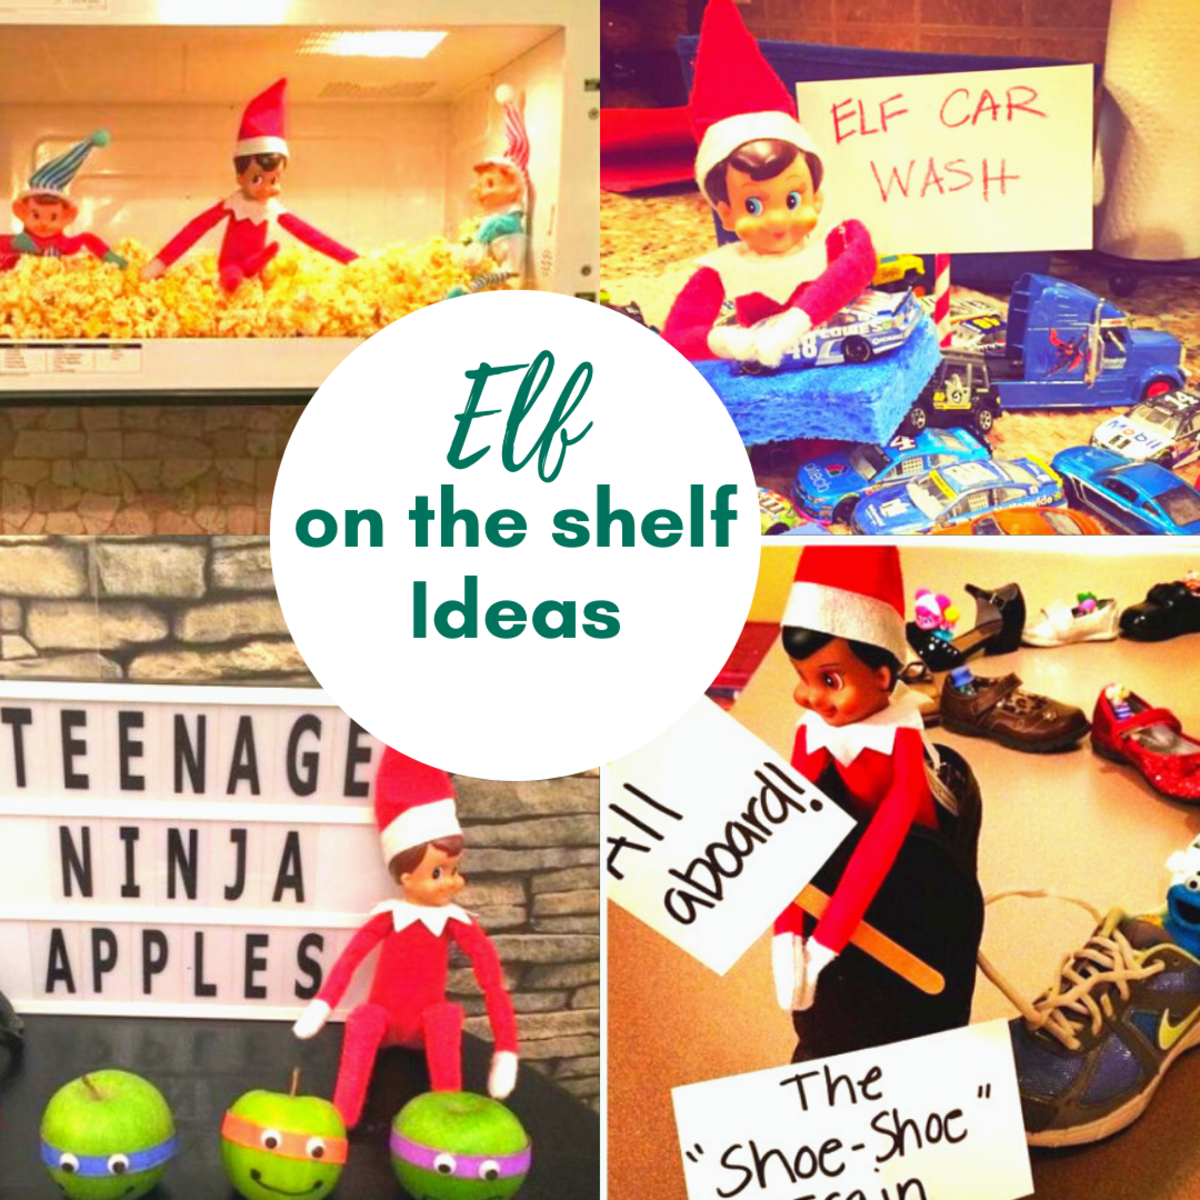 elf-on-the-shelf-ideas-for-kids